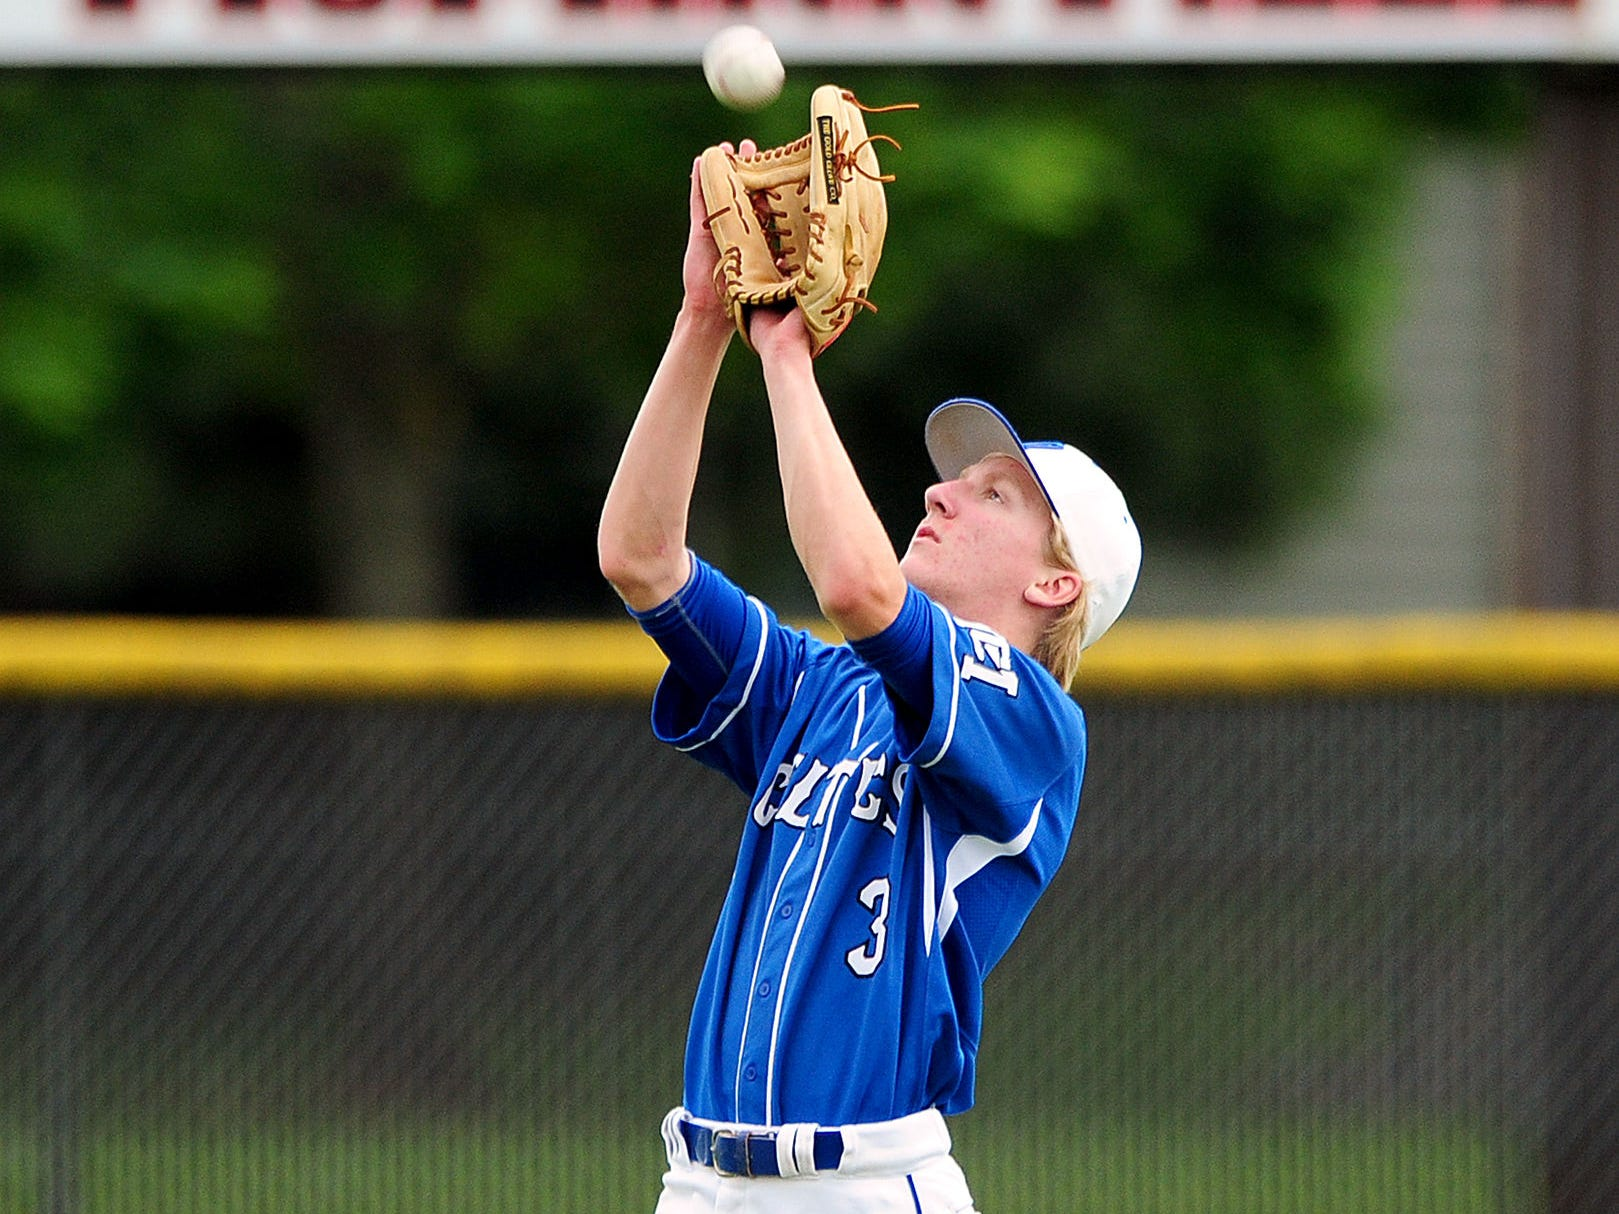 McNary center fielder Jacob Vasas catches a fly ball against McMinnville, on Wednesday, May 13, 2015, in McMinnville.